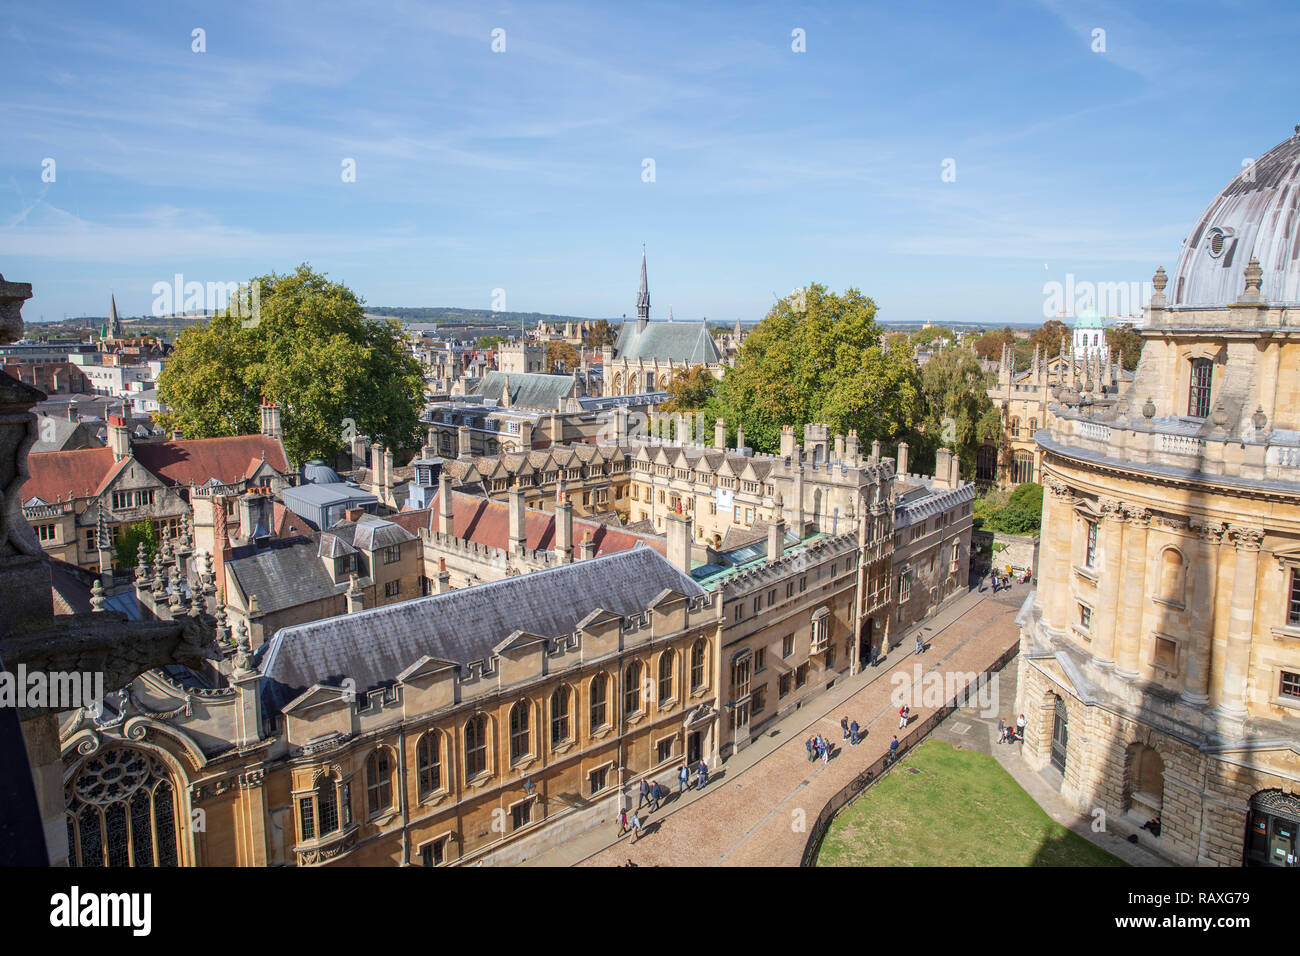 The Radcliffe Camera (detail), Brasenose College & Exeter College in Oxford, England. - Stock Image